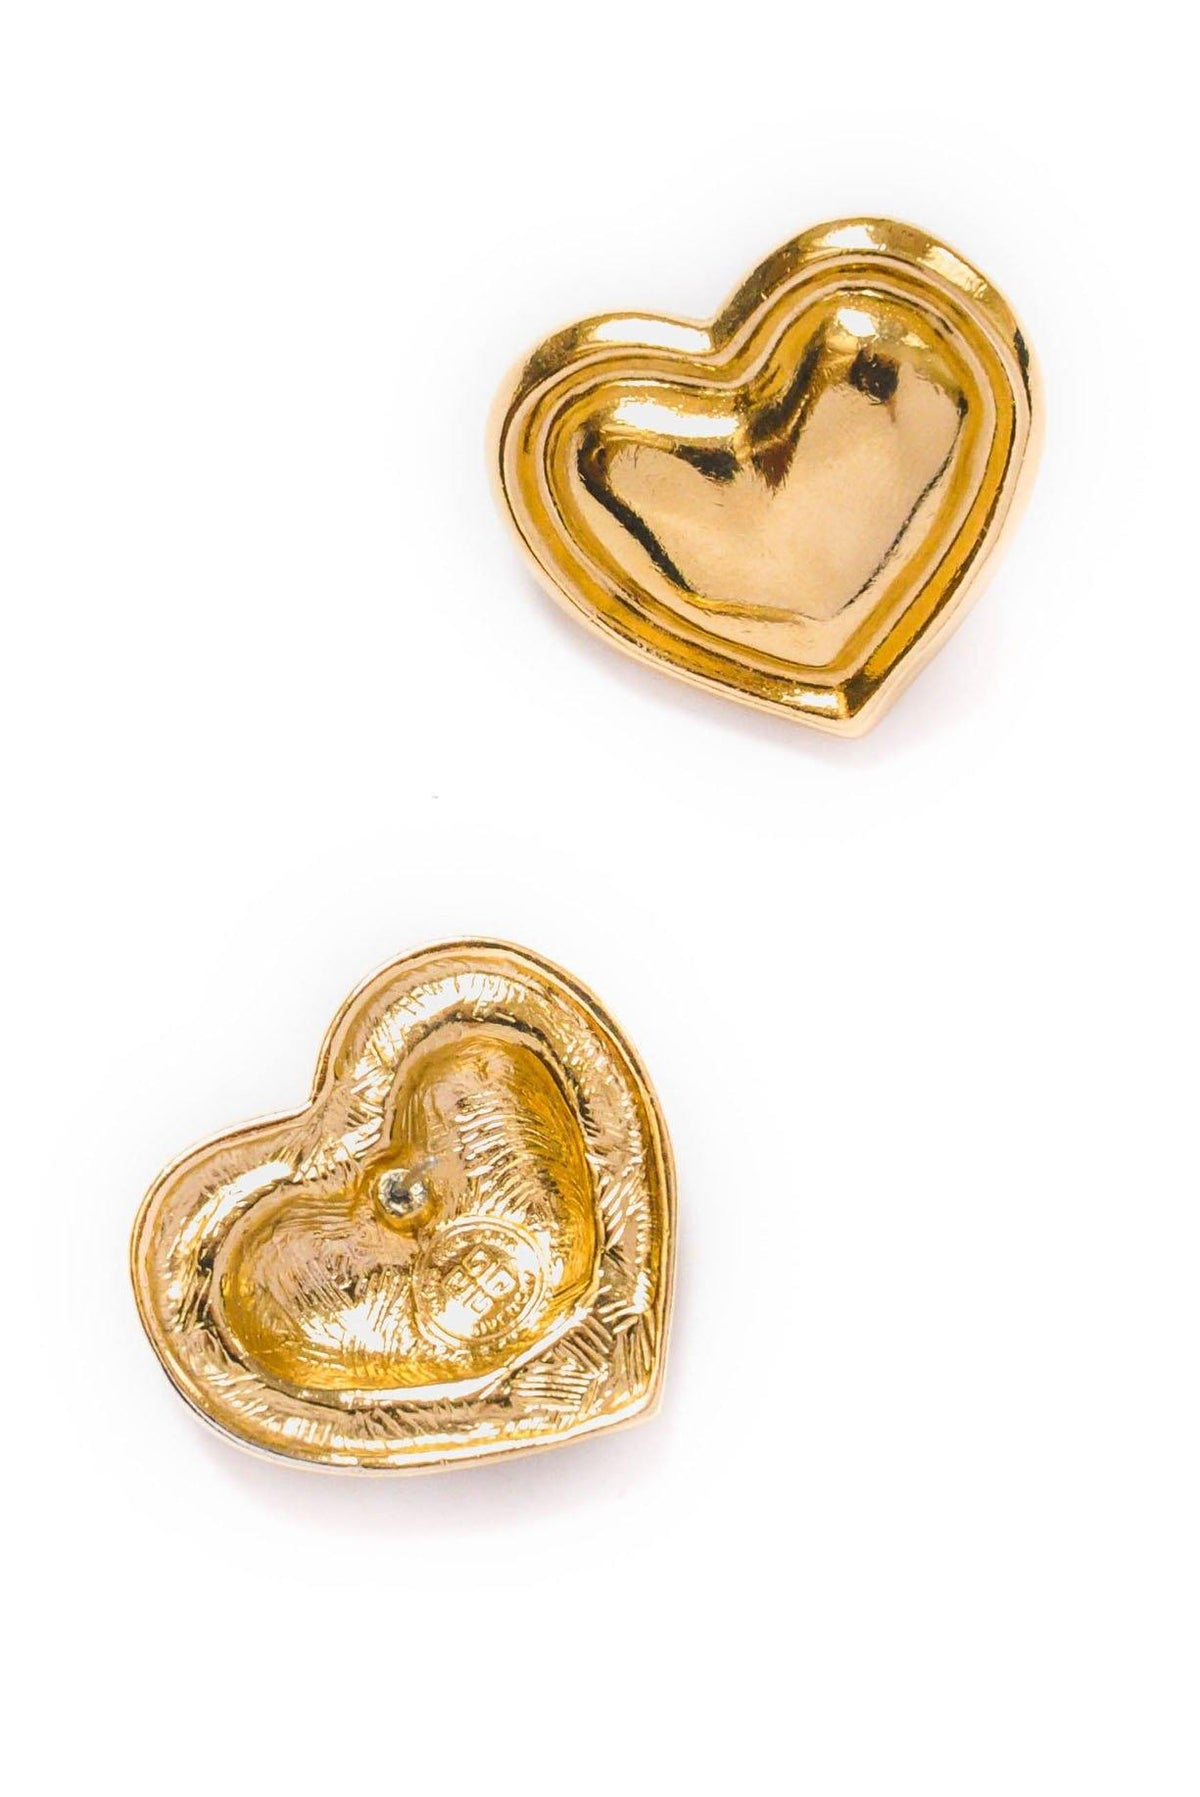 Vintage Givenchy Heart Pierced Earrings from Sweet and Spark